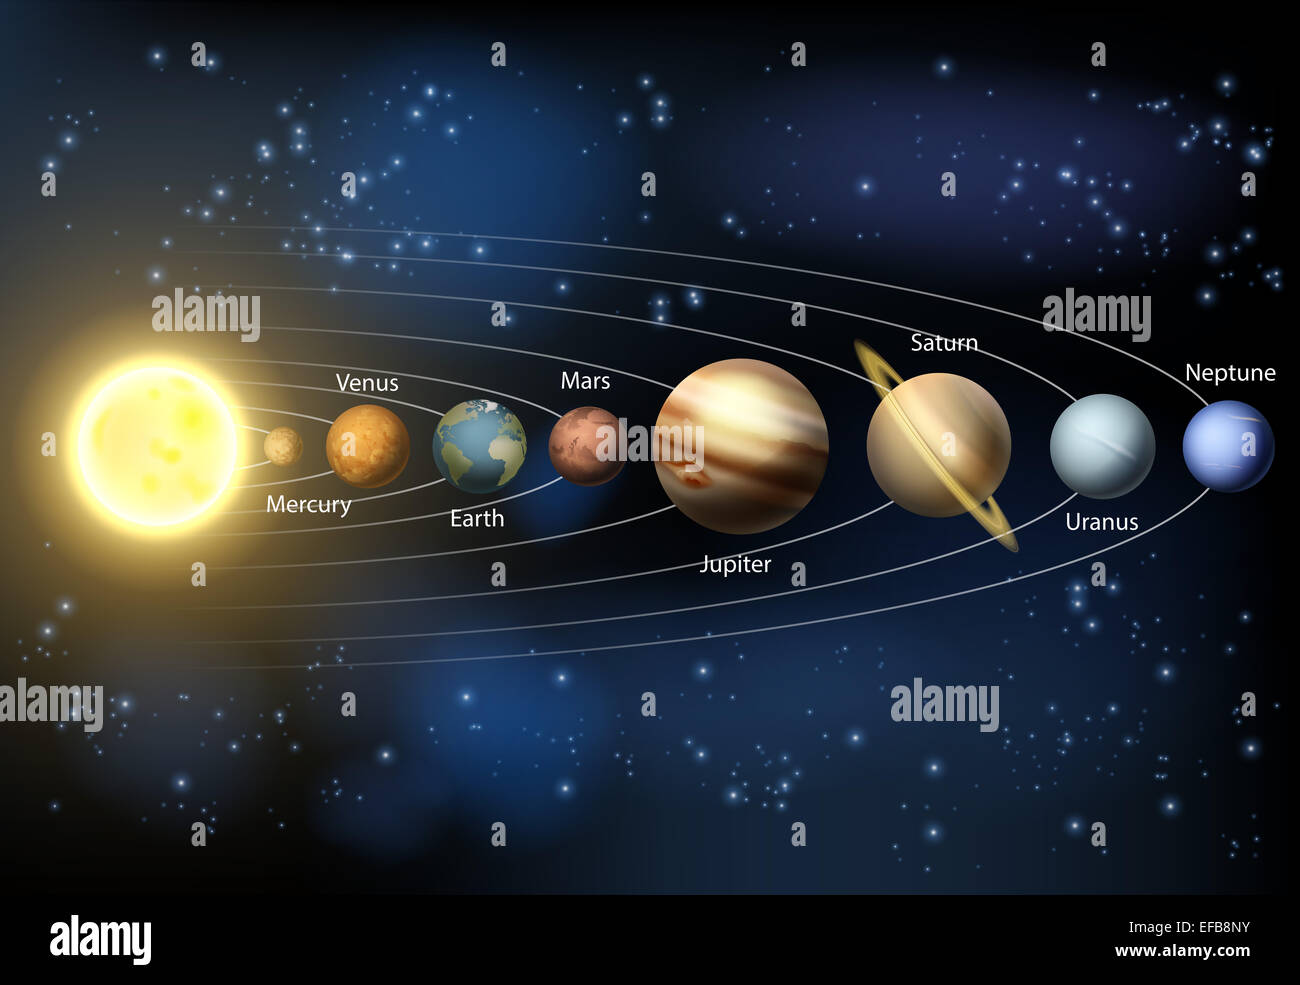 hight resolution of a diagram of the planets in our solar system with the planets names the solar system diagram label pics about space